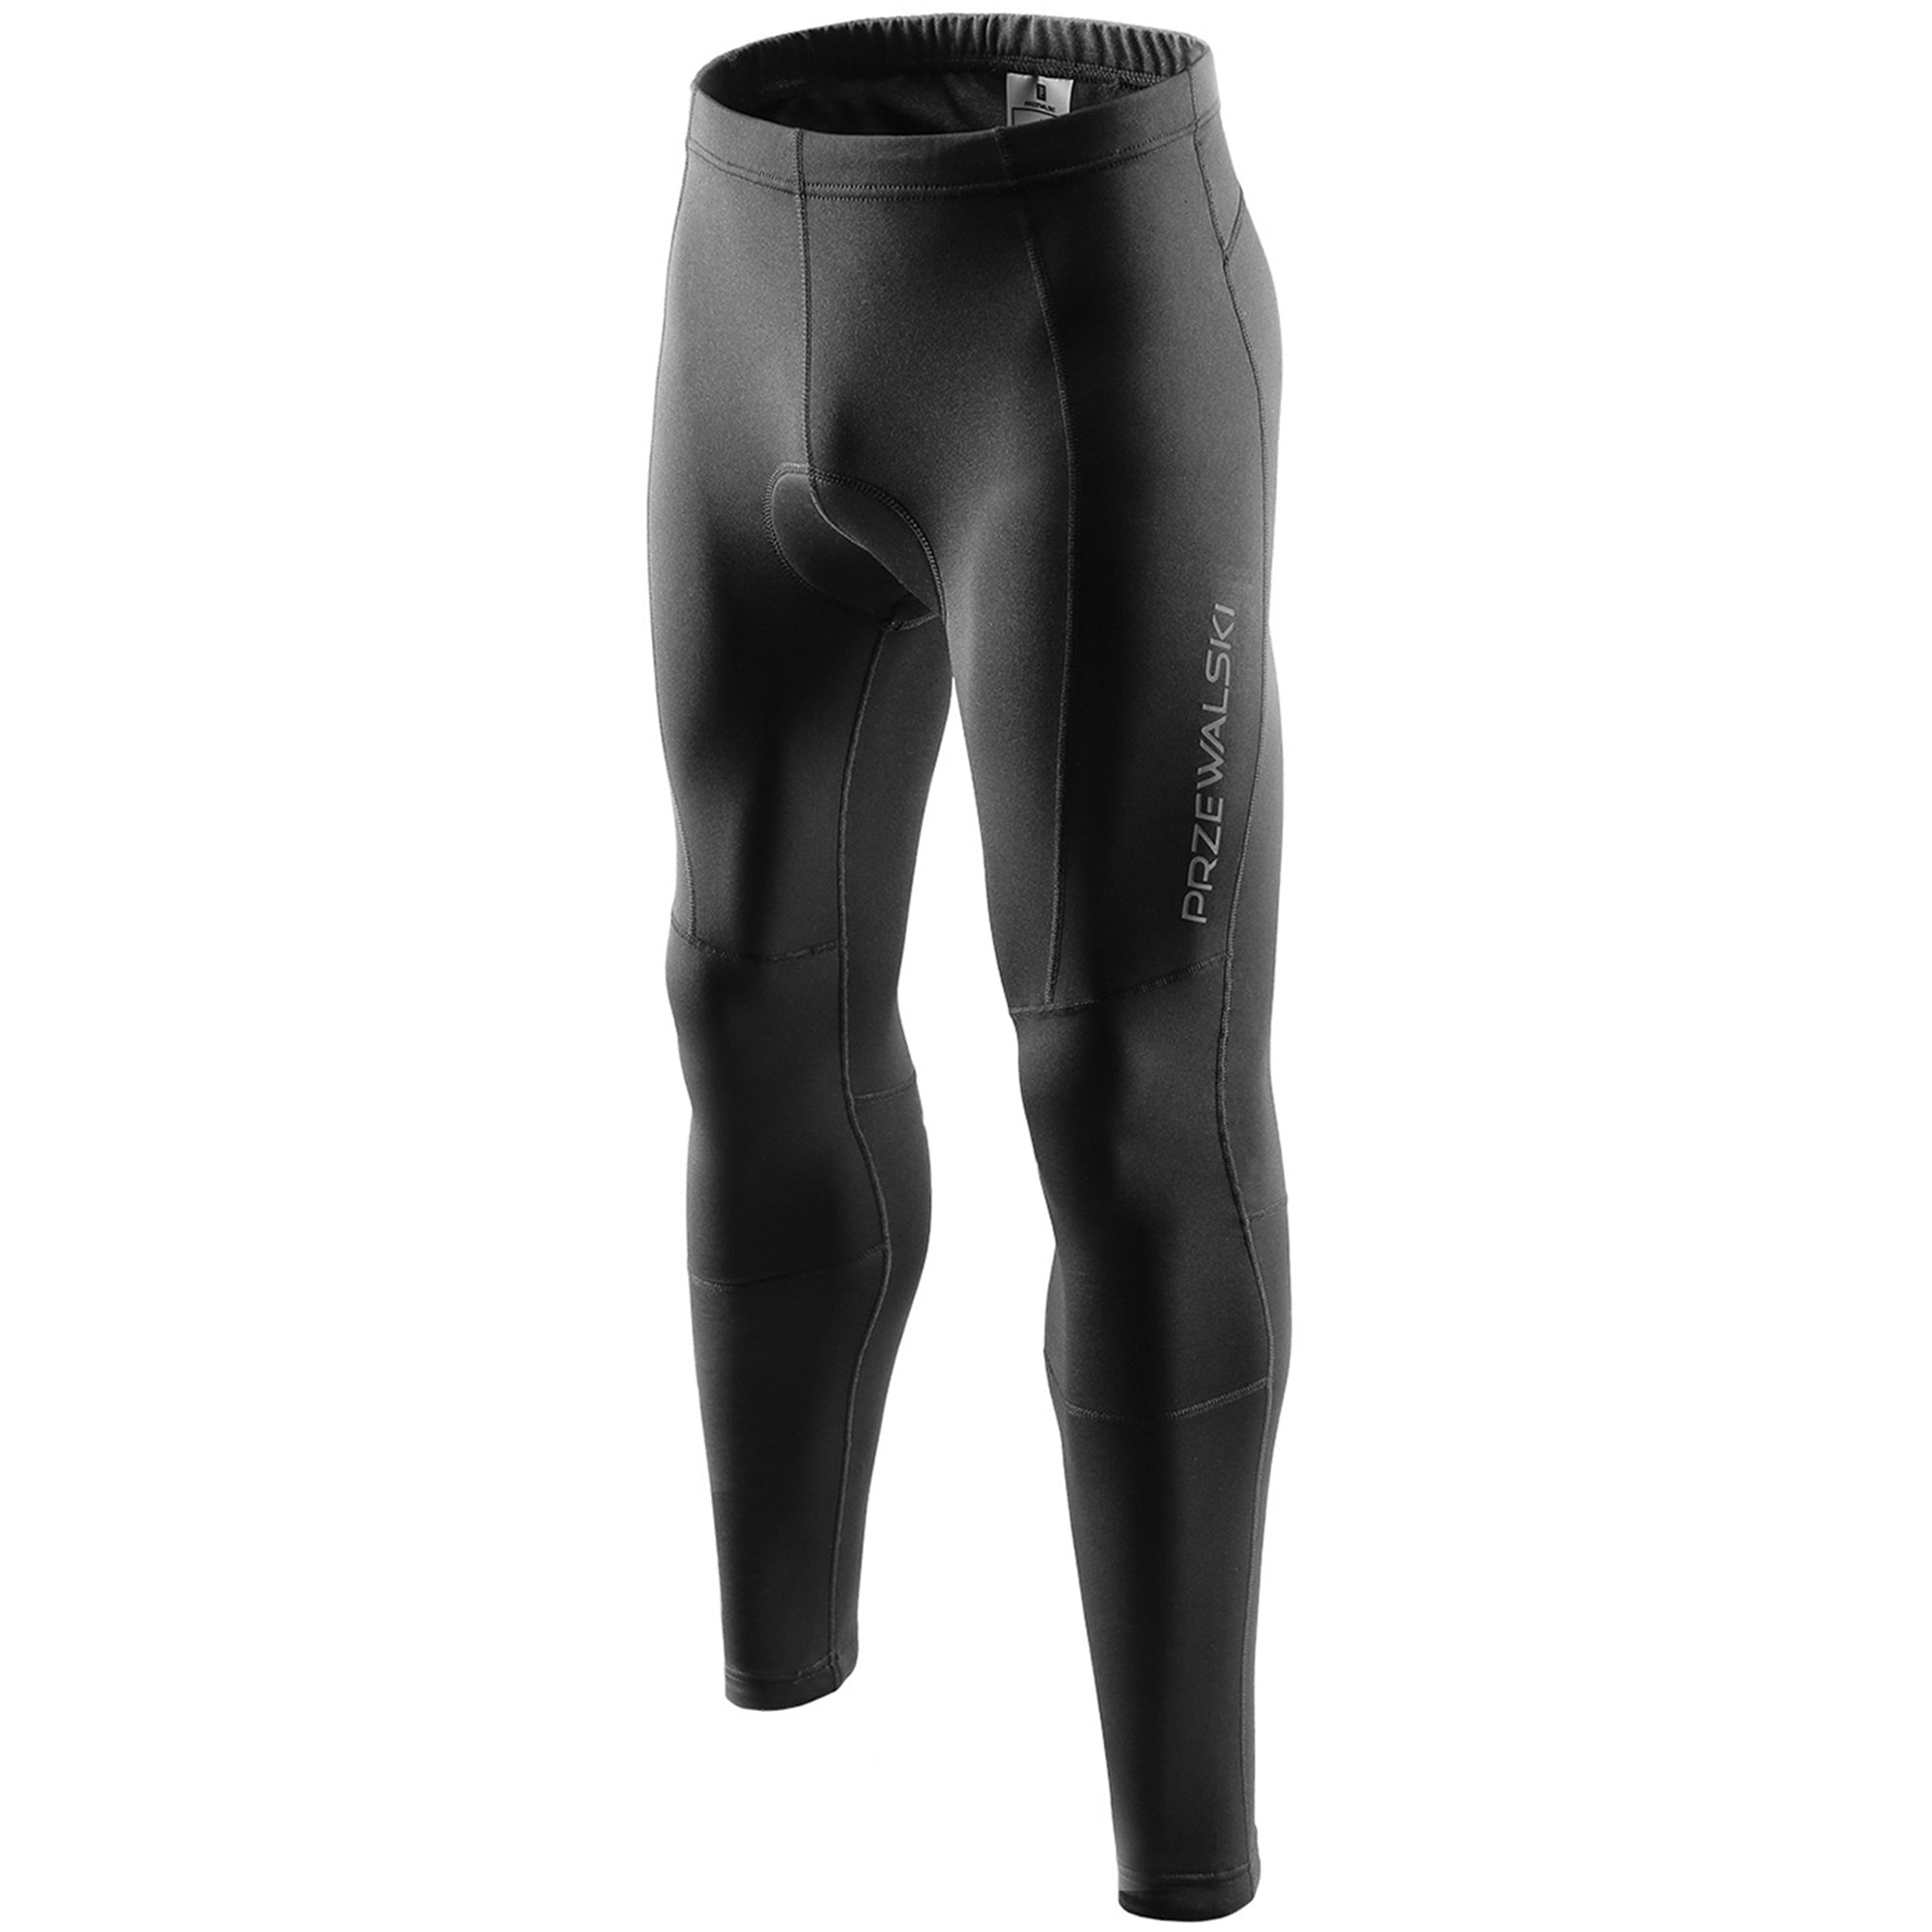 4D Padded Men's Thermal Cycling Tights, BASIC SERIES, Przewalski